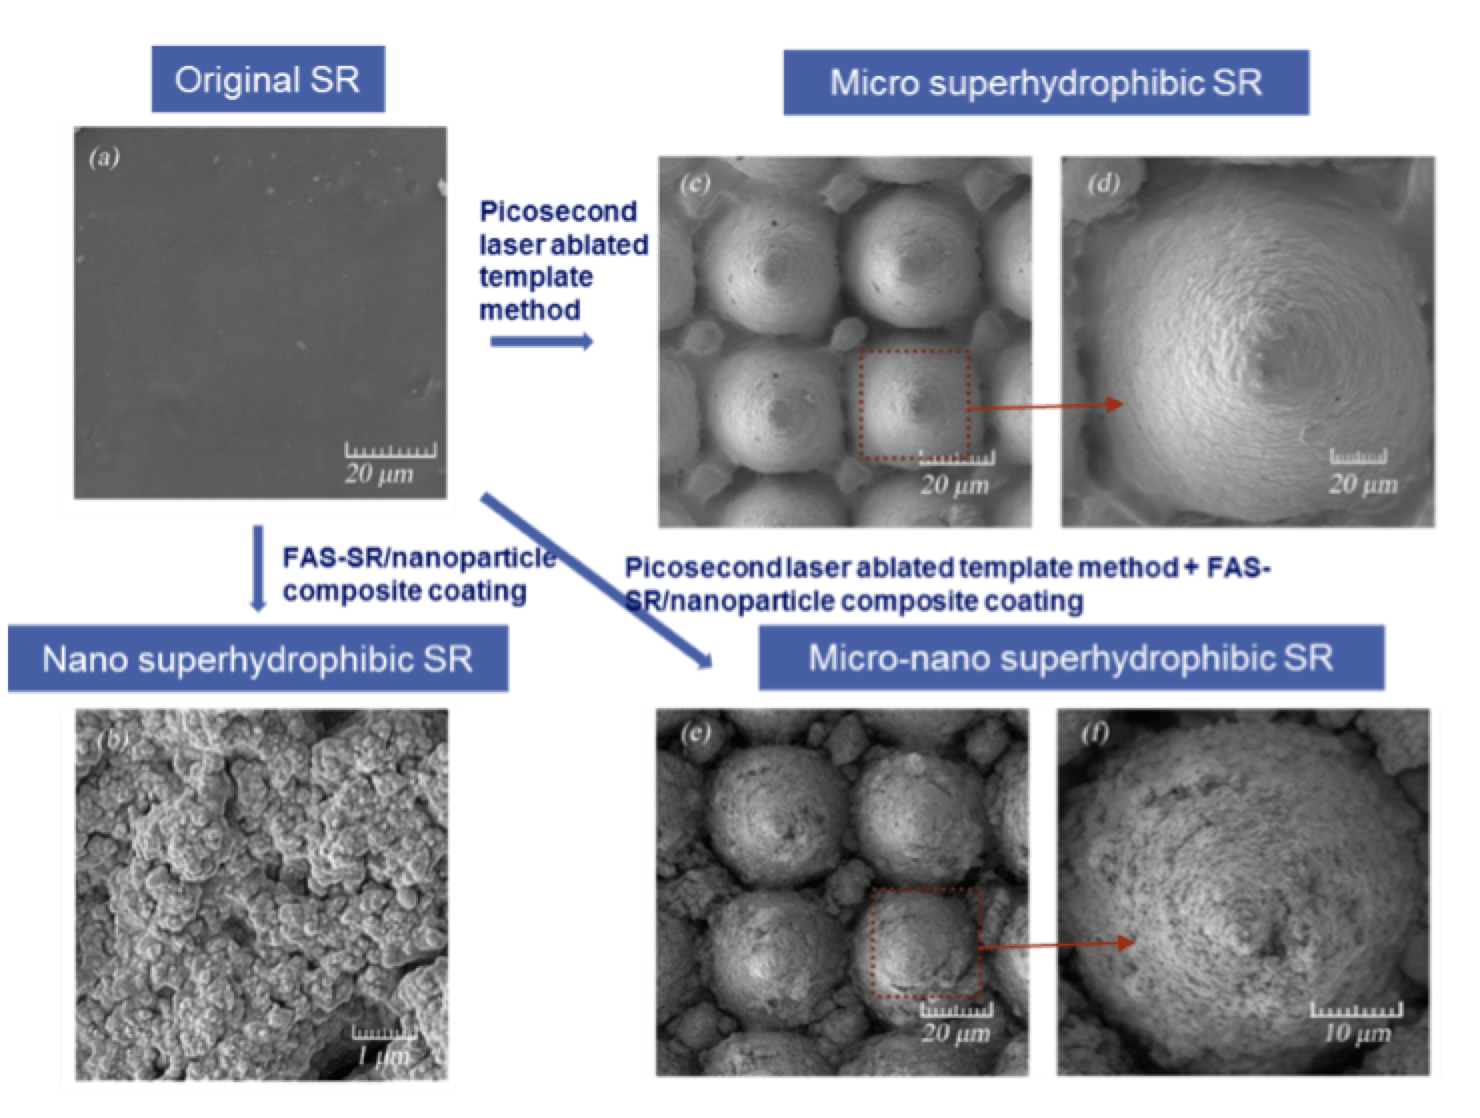 Fig. 11: Scanning electron microscope (SEM) of original & super-hydrophobic HTV silicone rubber specimens. (a) original HTV silicone rubber surface, top left; (b) nano-structure HTV silicone rubber surface, bottom left; (c, d) micro-structure HTV silicone rubber surface, top right; (e, f) micro-nano-structure HTV silicone rubber surface, bottom right. composite insulator Key Issues for Future of Composite Insulators: View from China Screen Shot 2018 09 28 at 15